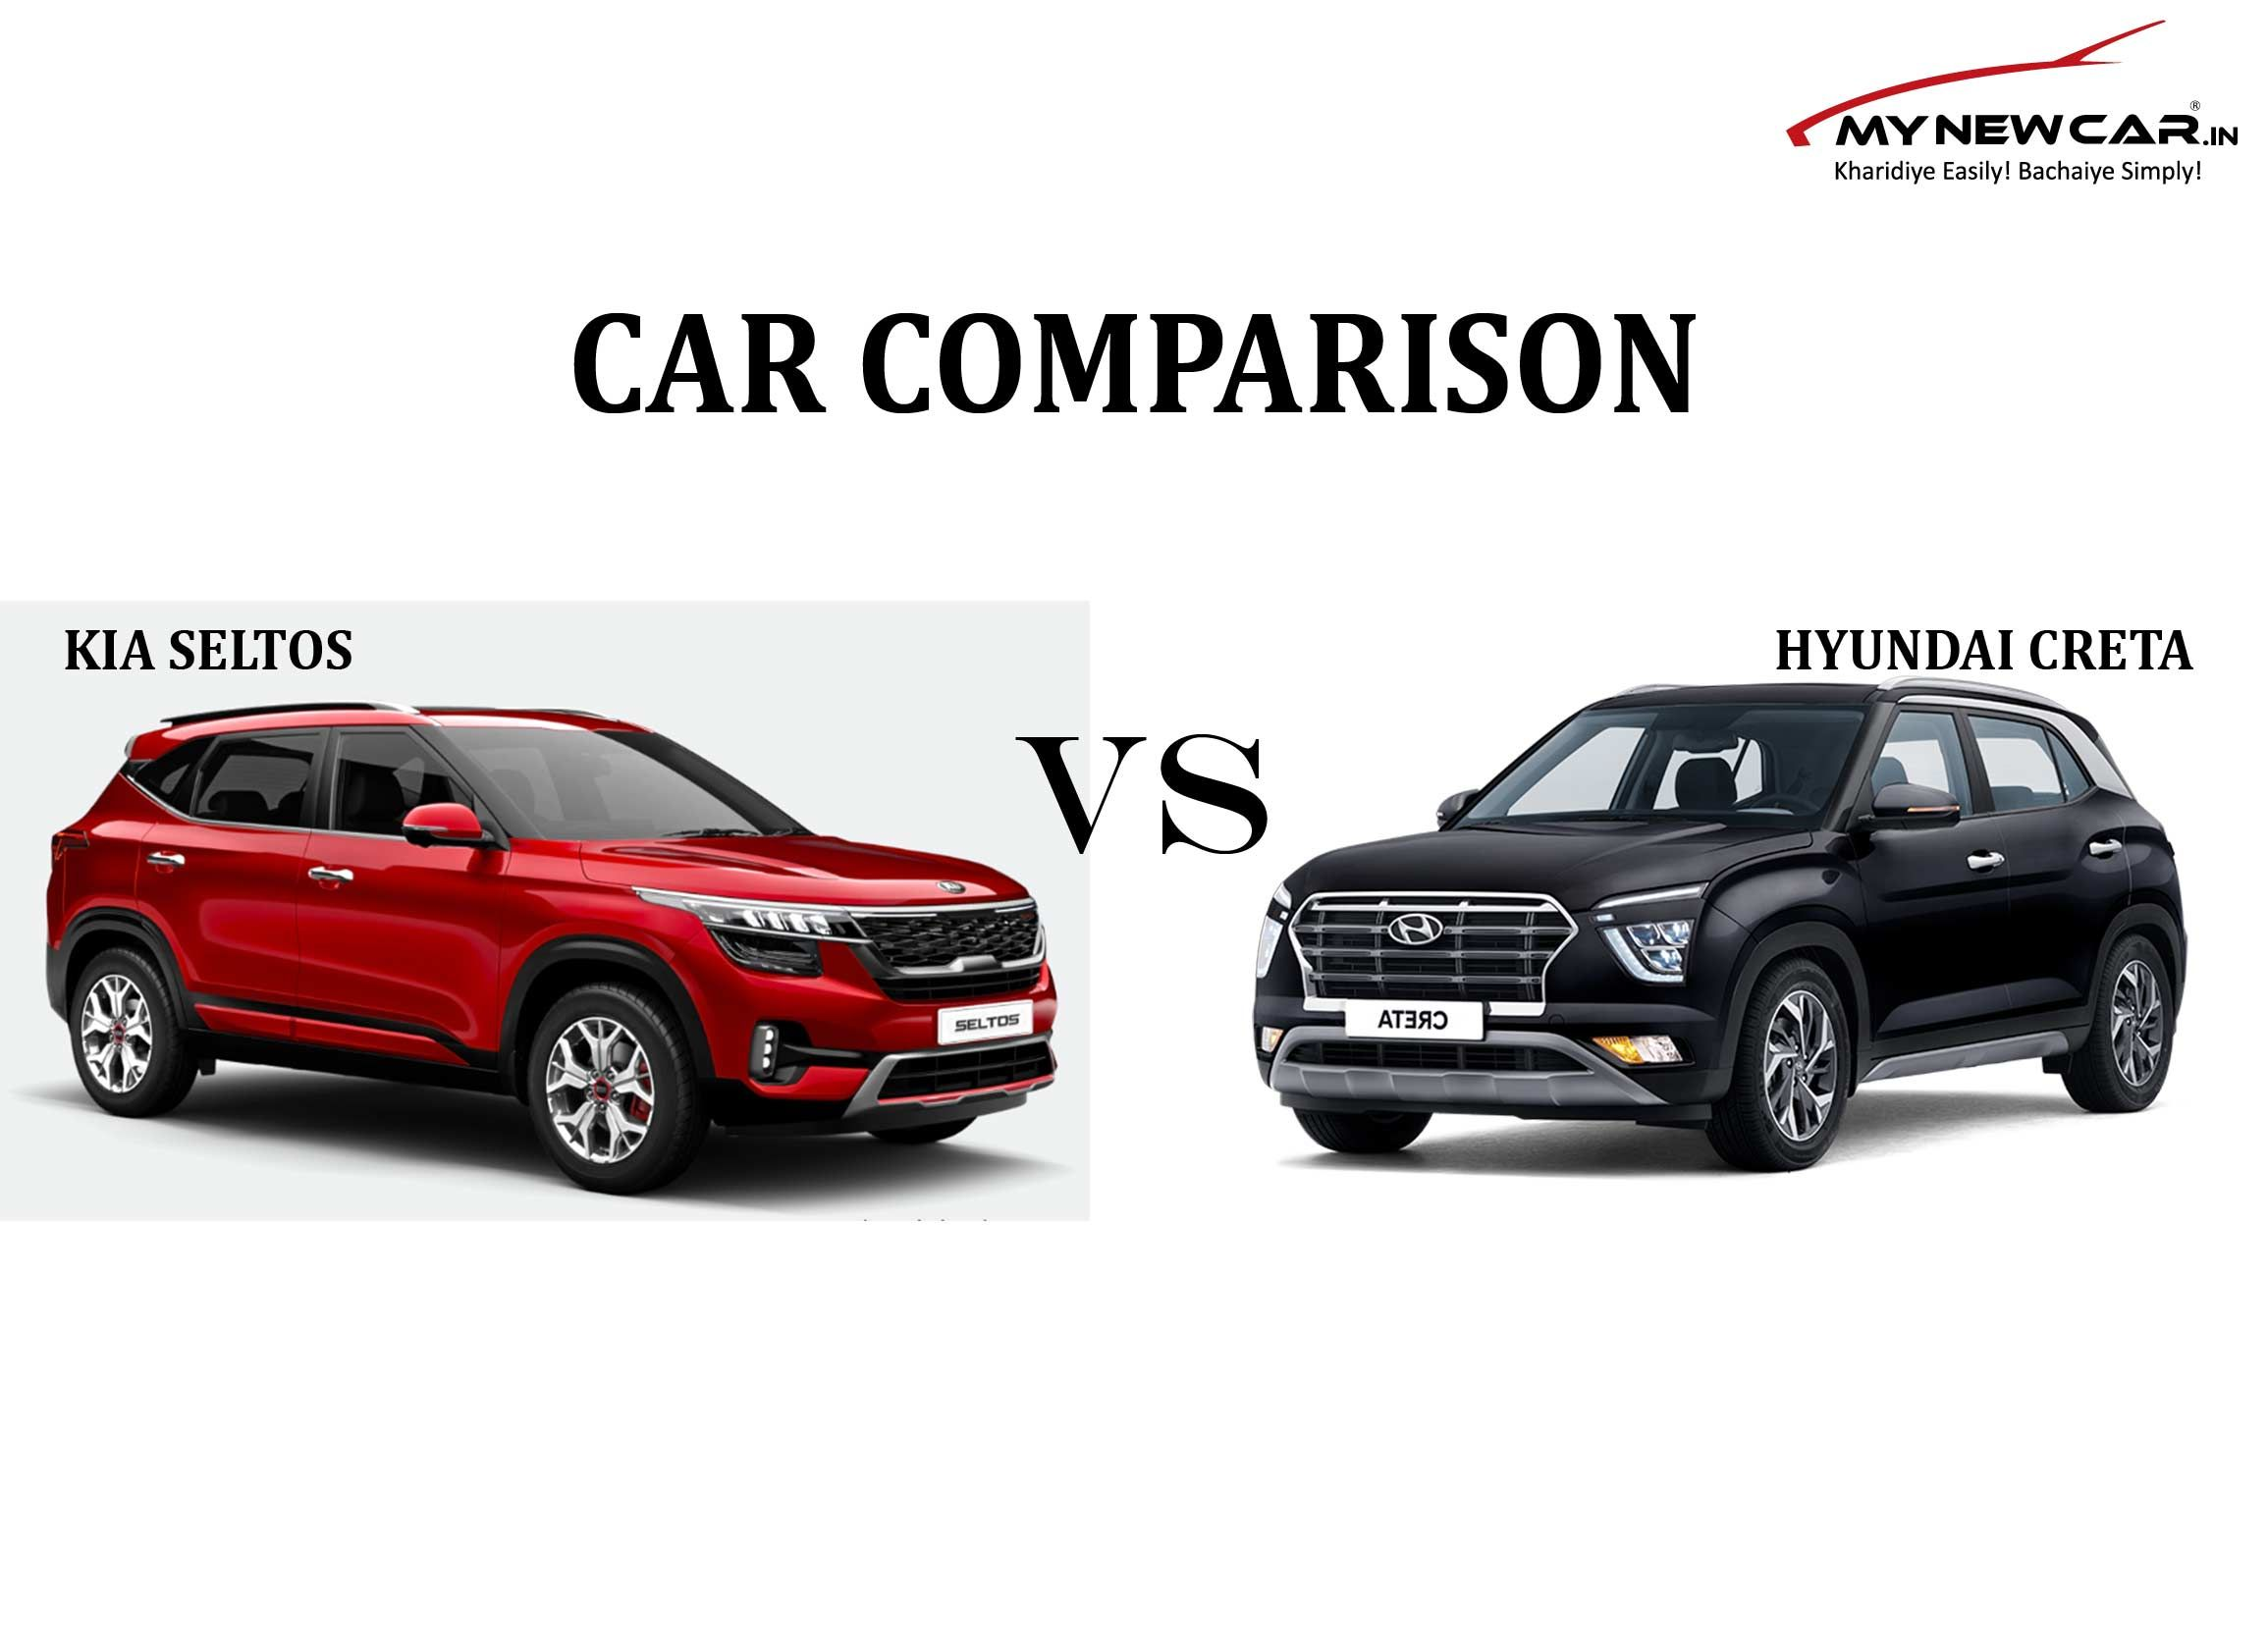 Car Comparison Hyundai Creta Vs Kia Seltos In 2020 Hyundai Kia Car